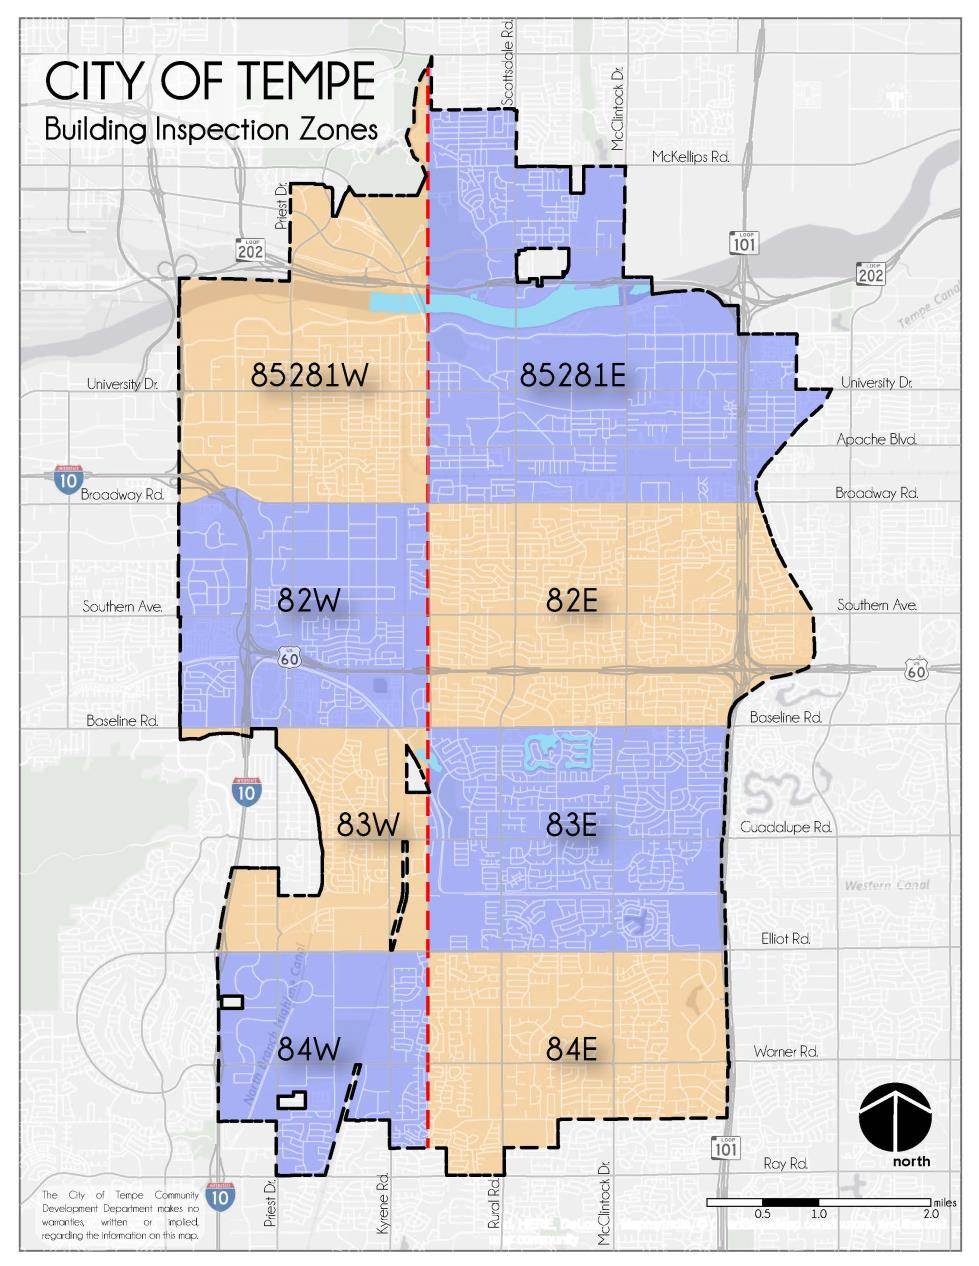 Inspections Zones Map 9-20-16_Page_1